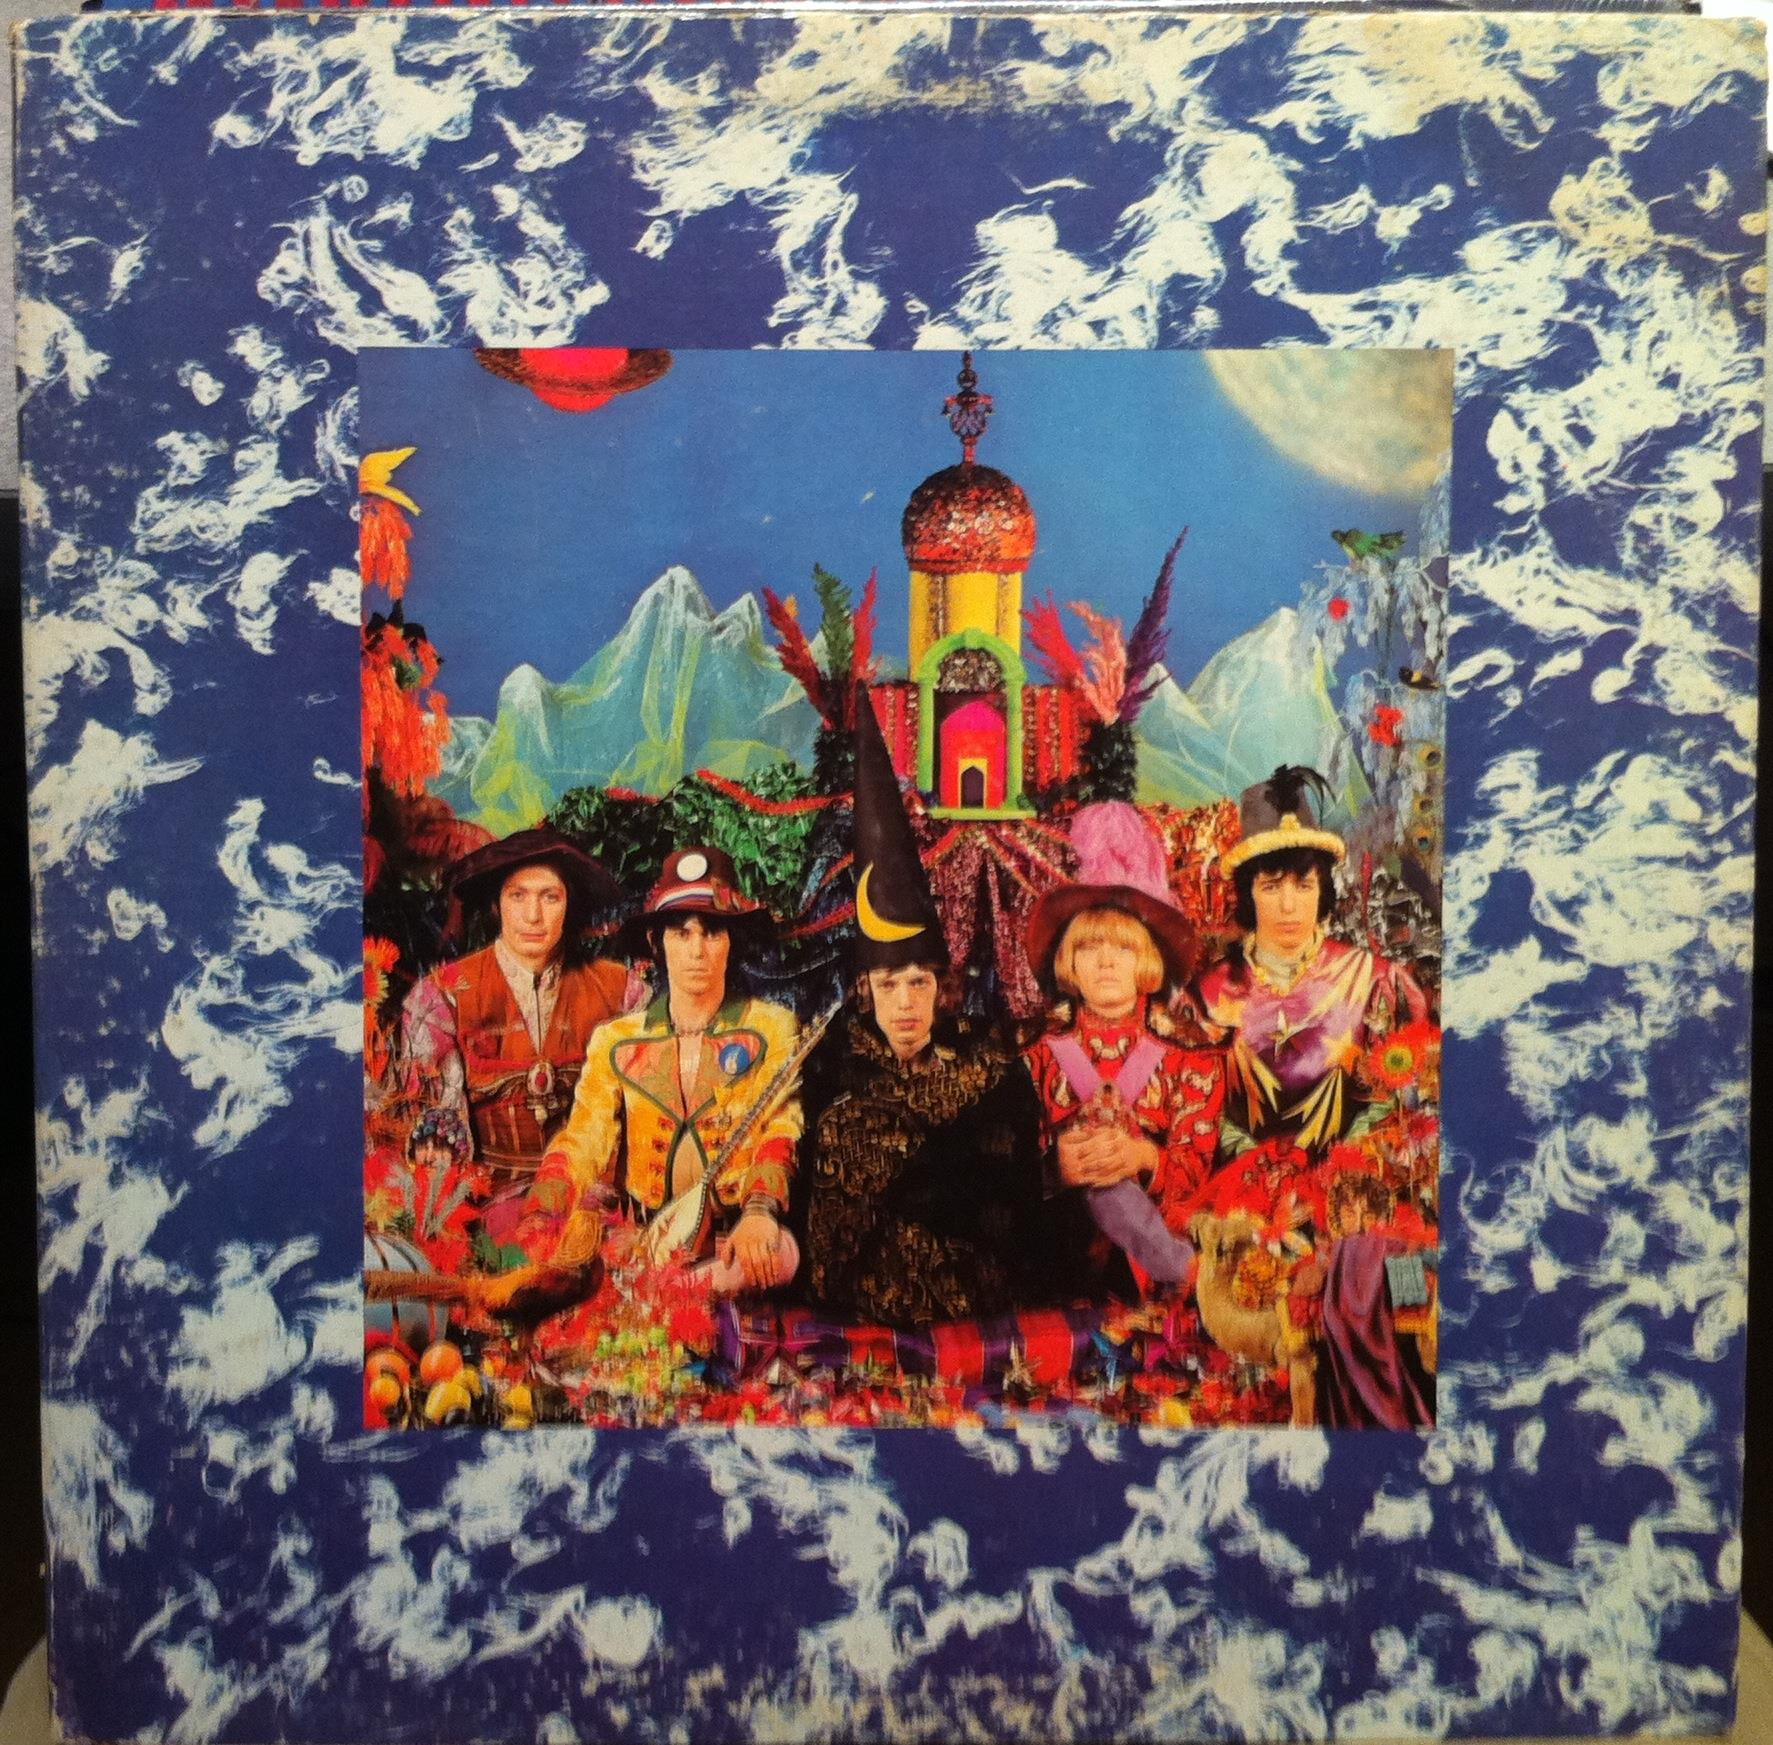 Rolling Stones - The Rolling Stones Their Satanic Majesties Request Lp Vg+ Nps-2 Stereo Vinyl '67 (their Satanic Maje